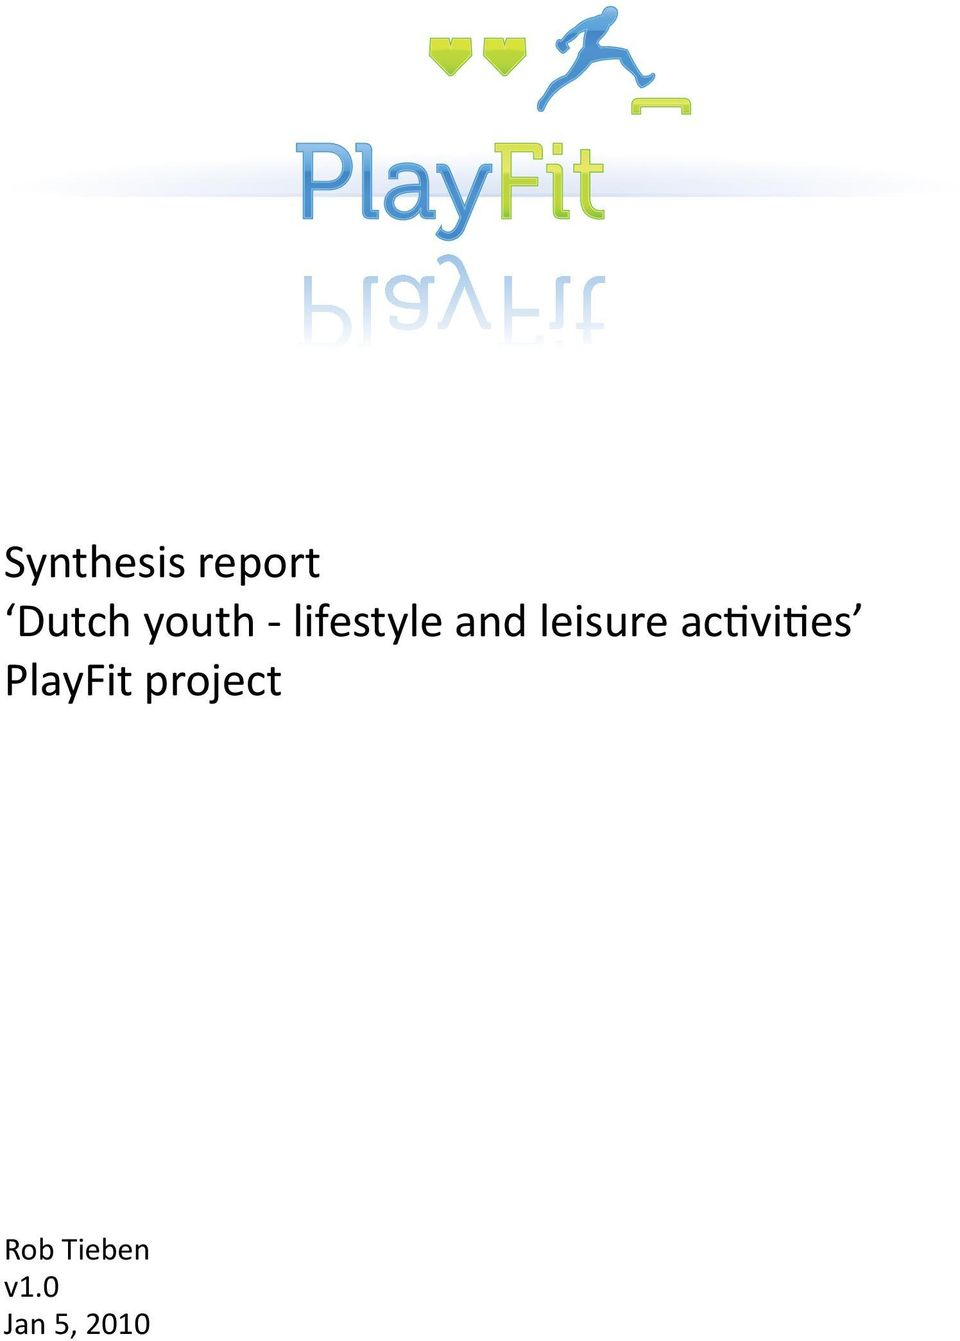 leisure ac6vi6es PlayFit